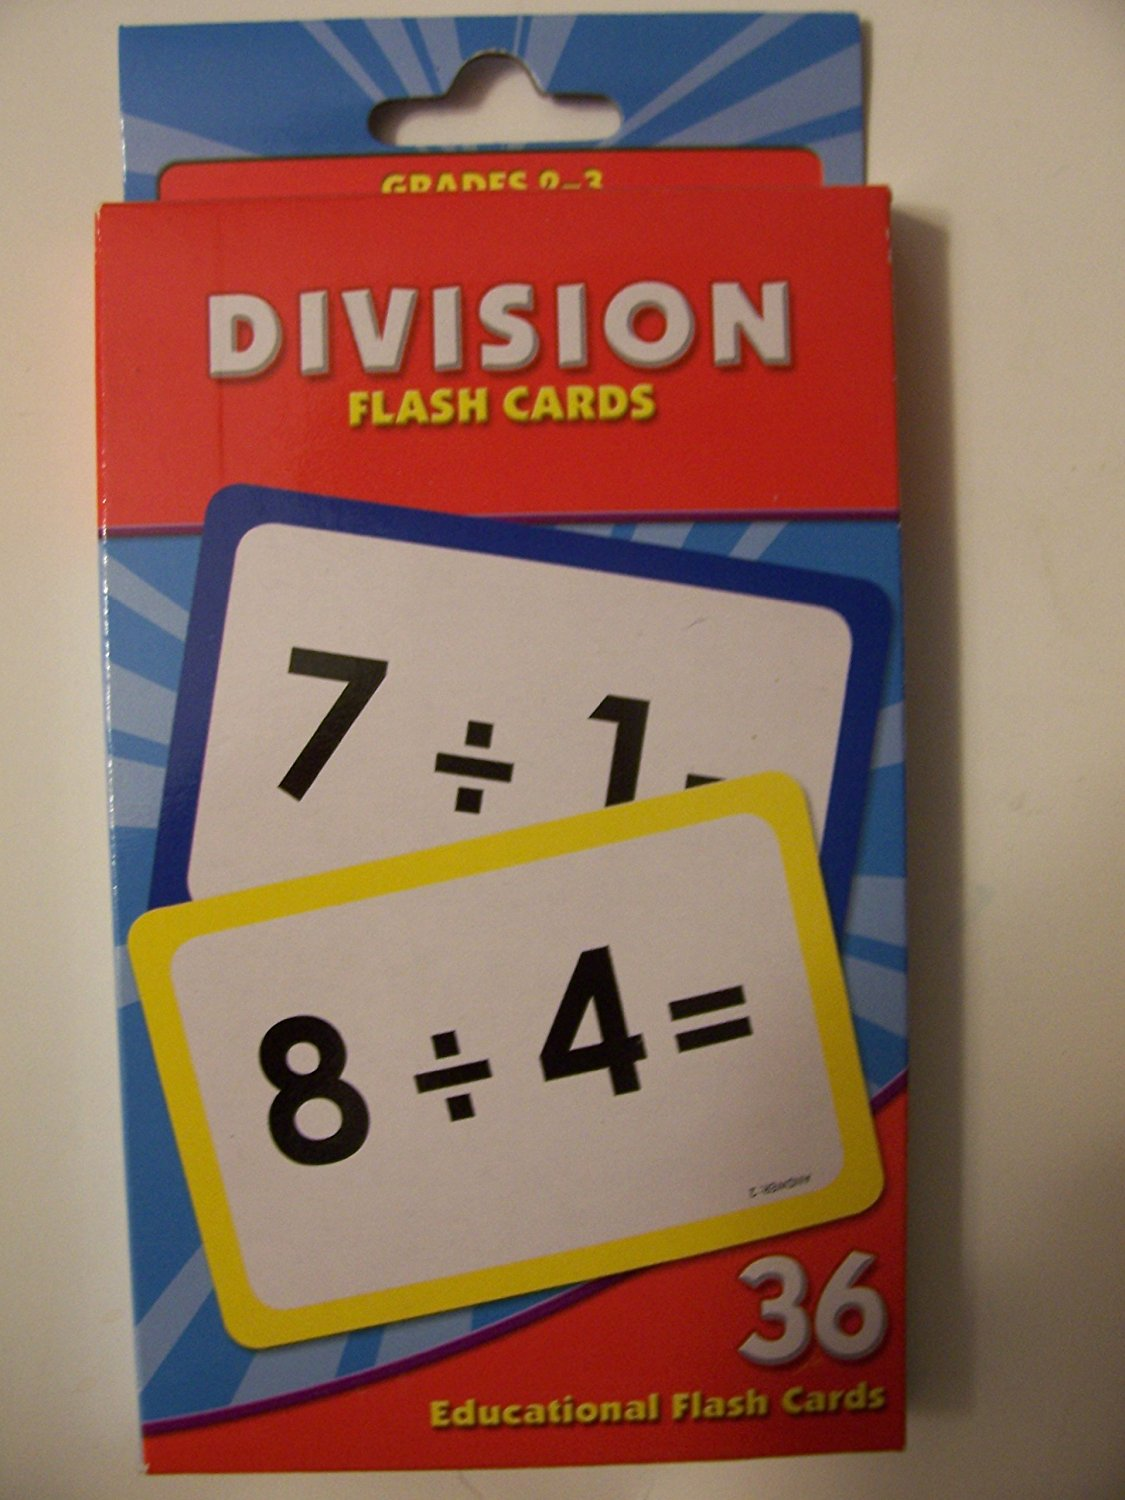 Educational Flash Cards ~ Division (36 Flash Cards; Grades 2-3)